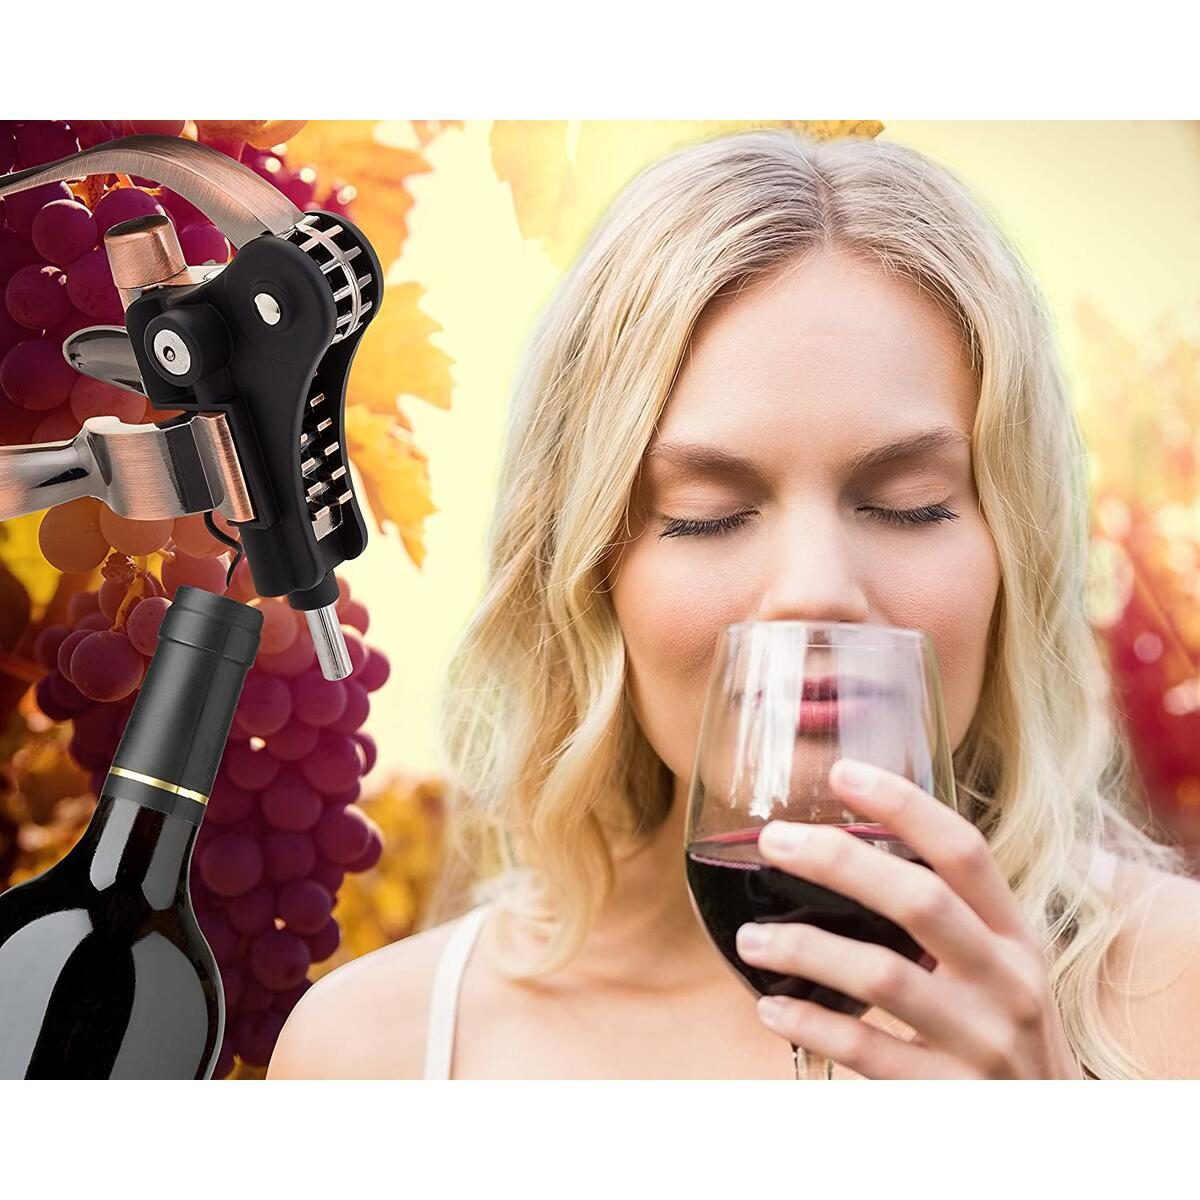 Rabbit Wine Opener Corkscrew Set With Foil Cutter and Extra Screwpull, 2020 Upgraded Model—Heavy Duty, Military Grade Material, Unlike Other Rabbit Wine Openers This New Model Does Not Break